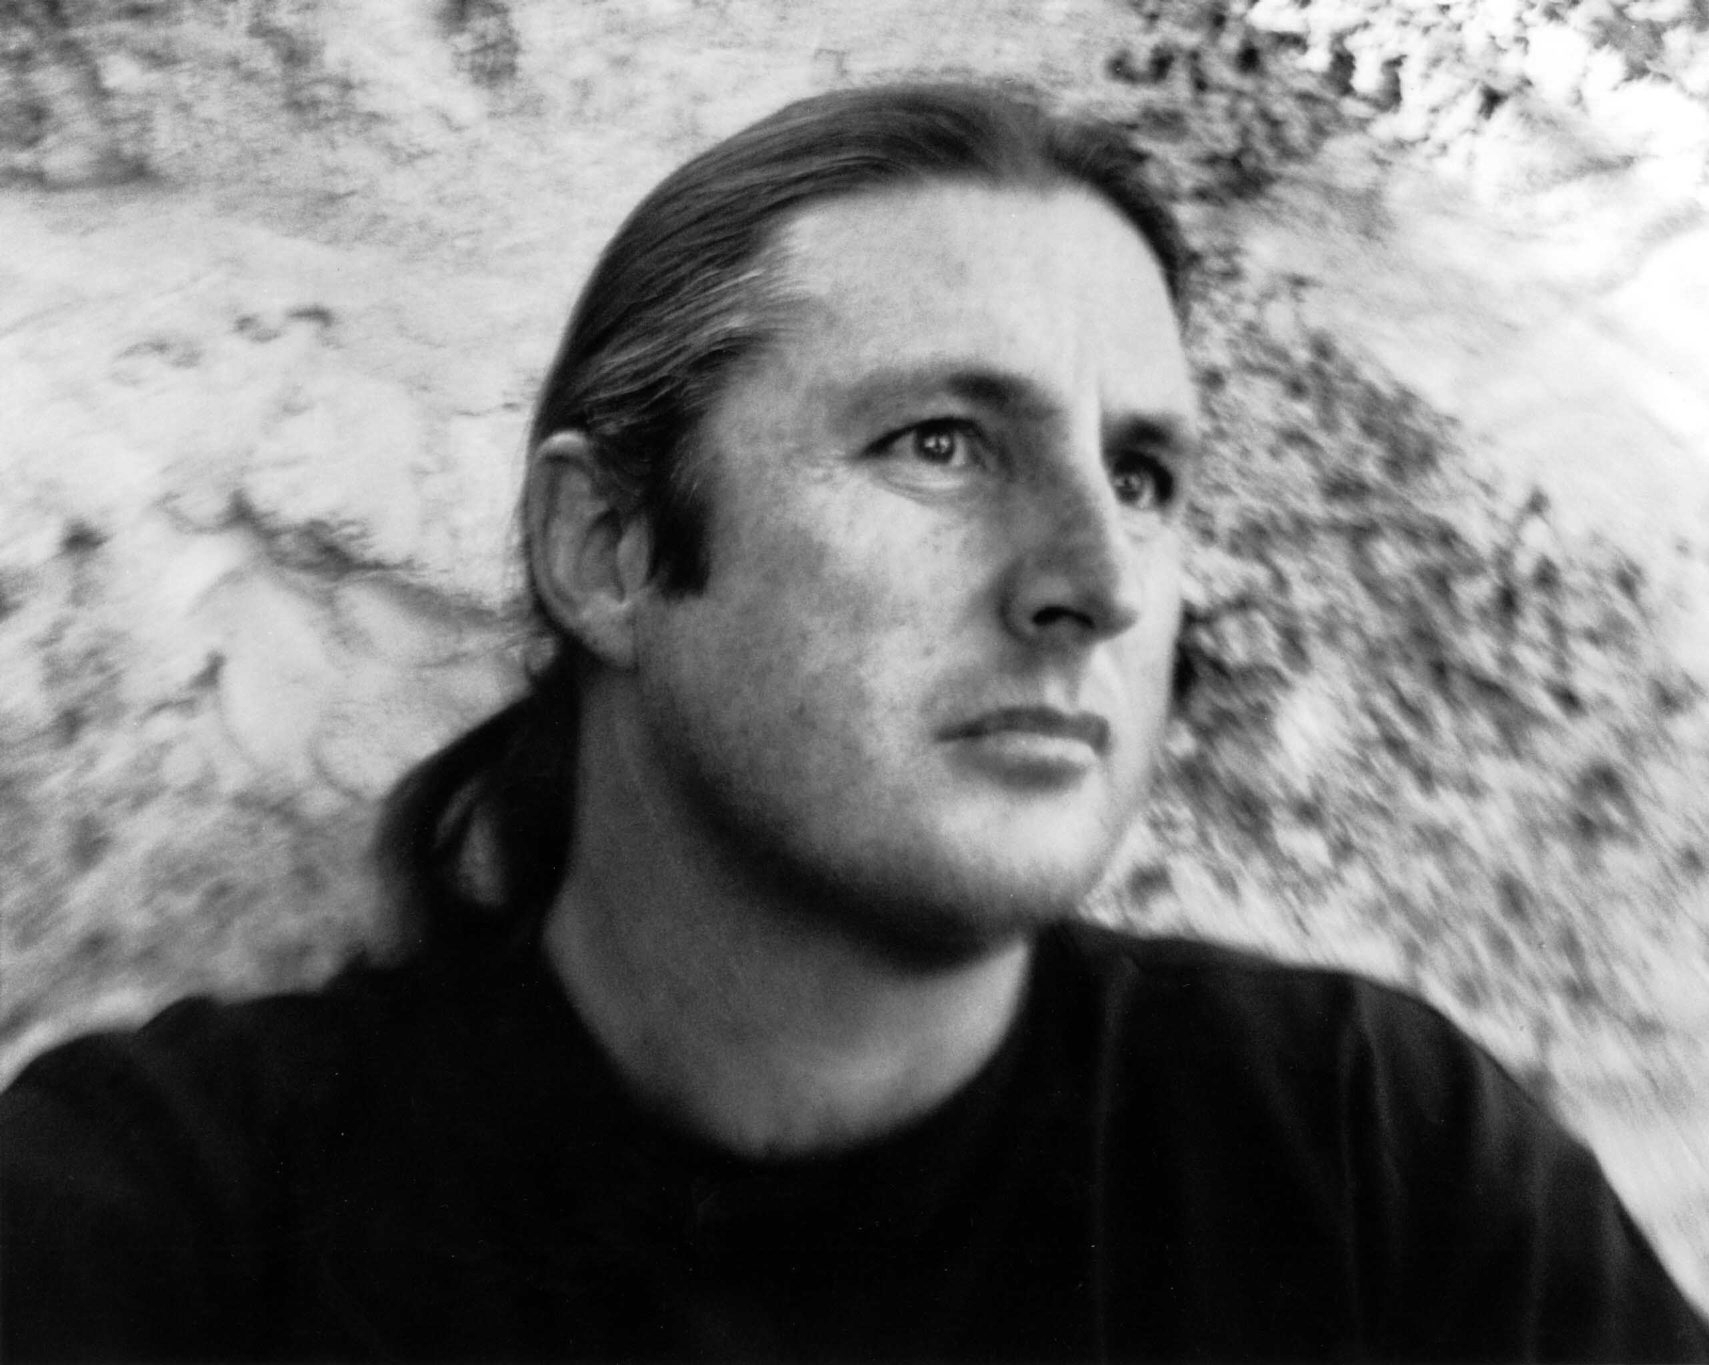 Some consider Tim Winton the greatest living Australian writer.